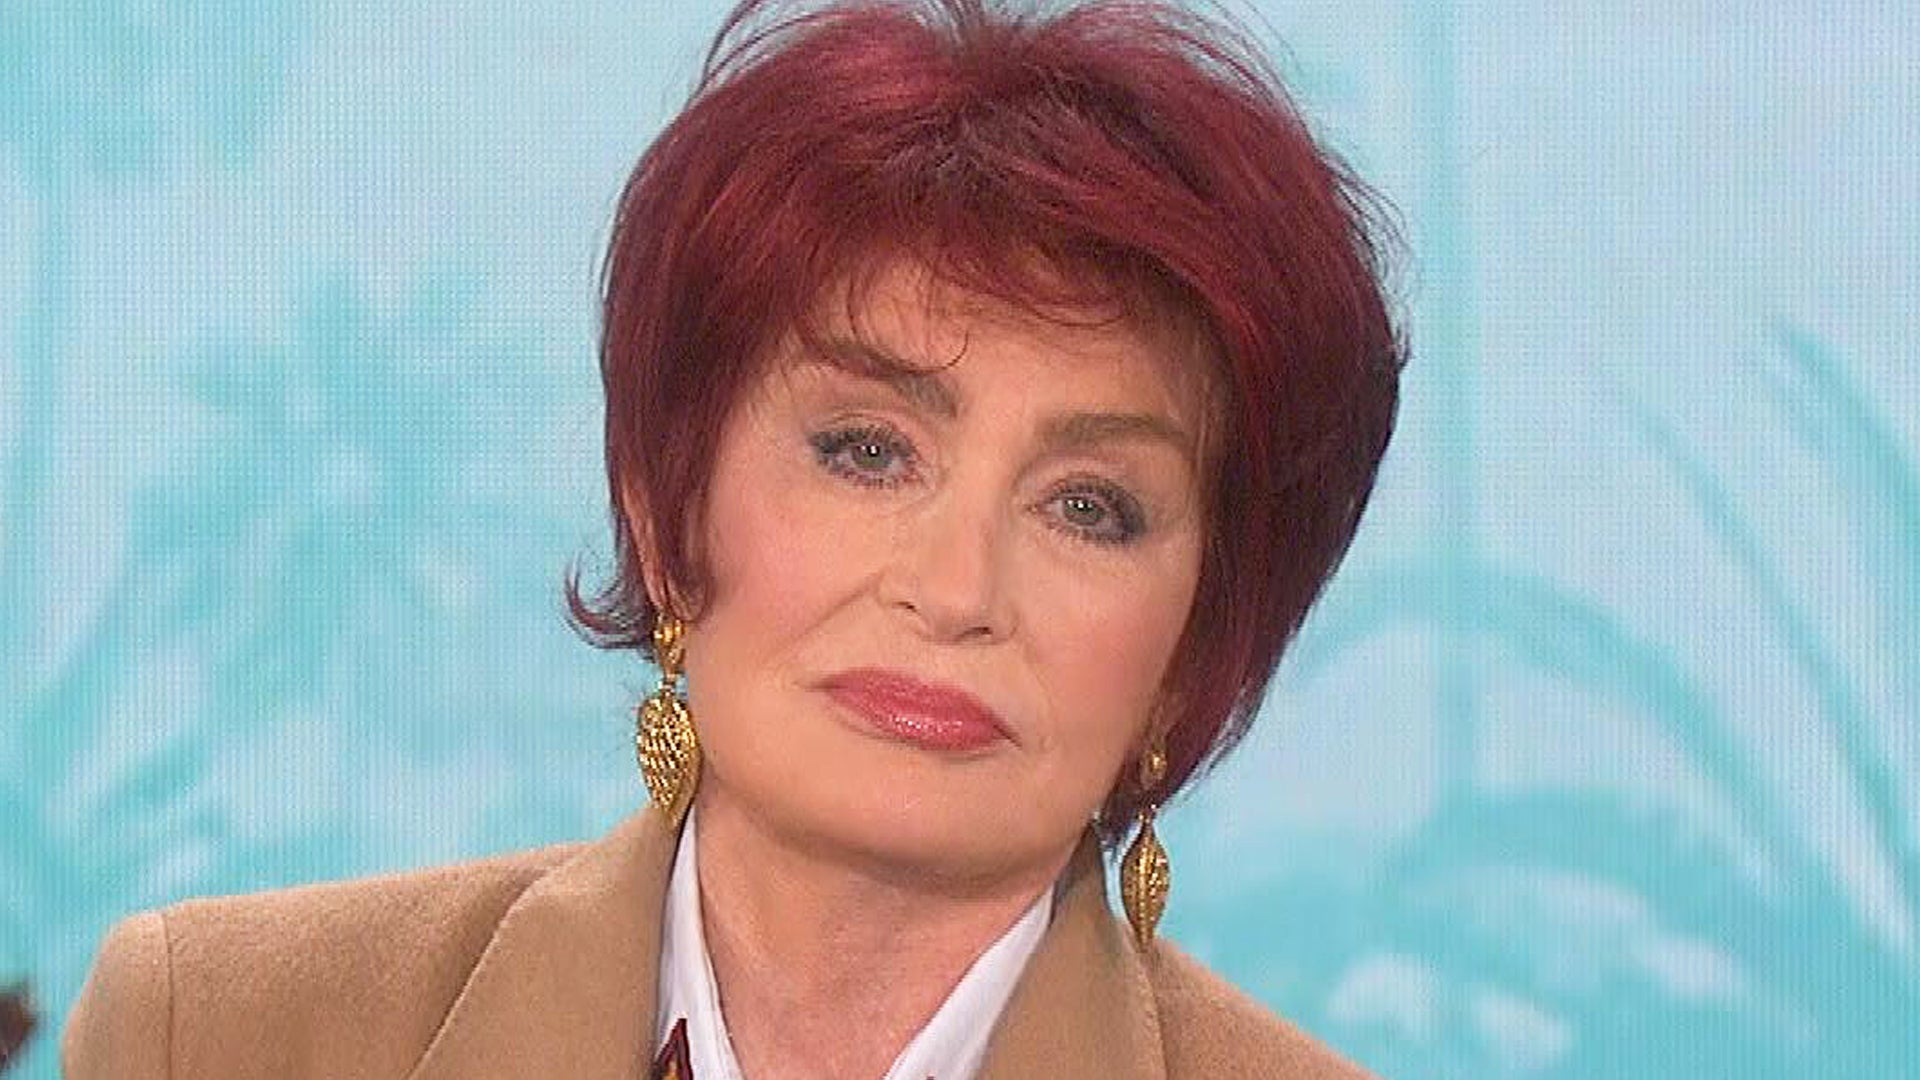 Sharon Osbourne Apologizes After Heated Discussion About Racism On The Talk Piers Morgan Responds Entertainment Tonight